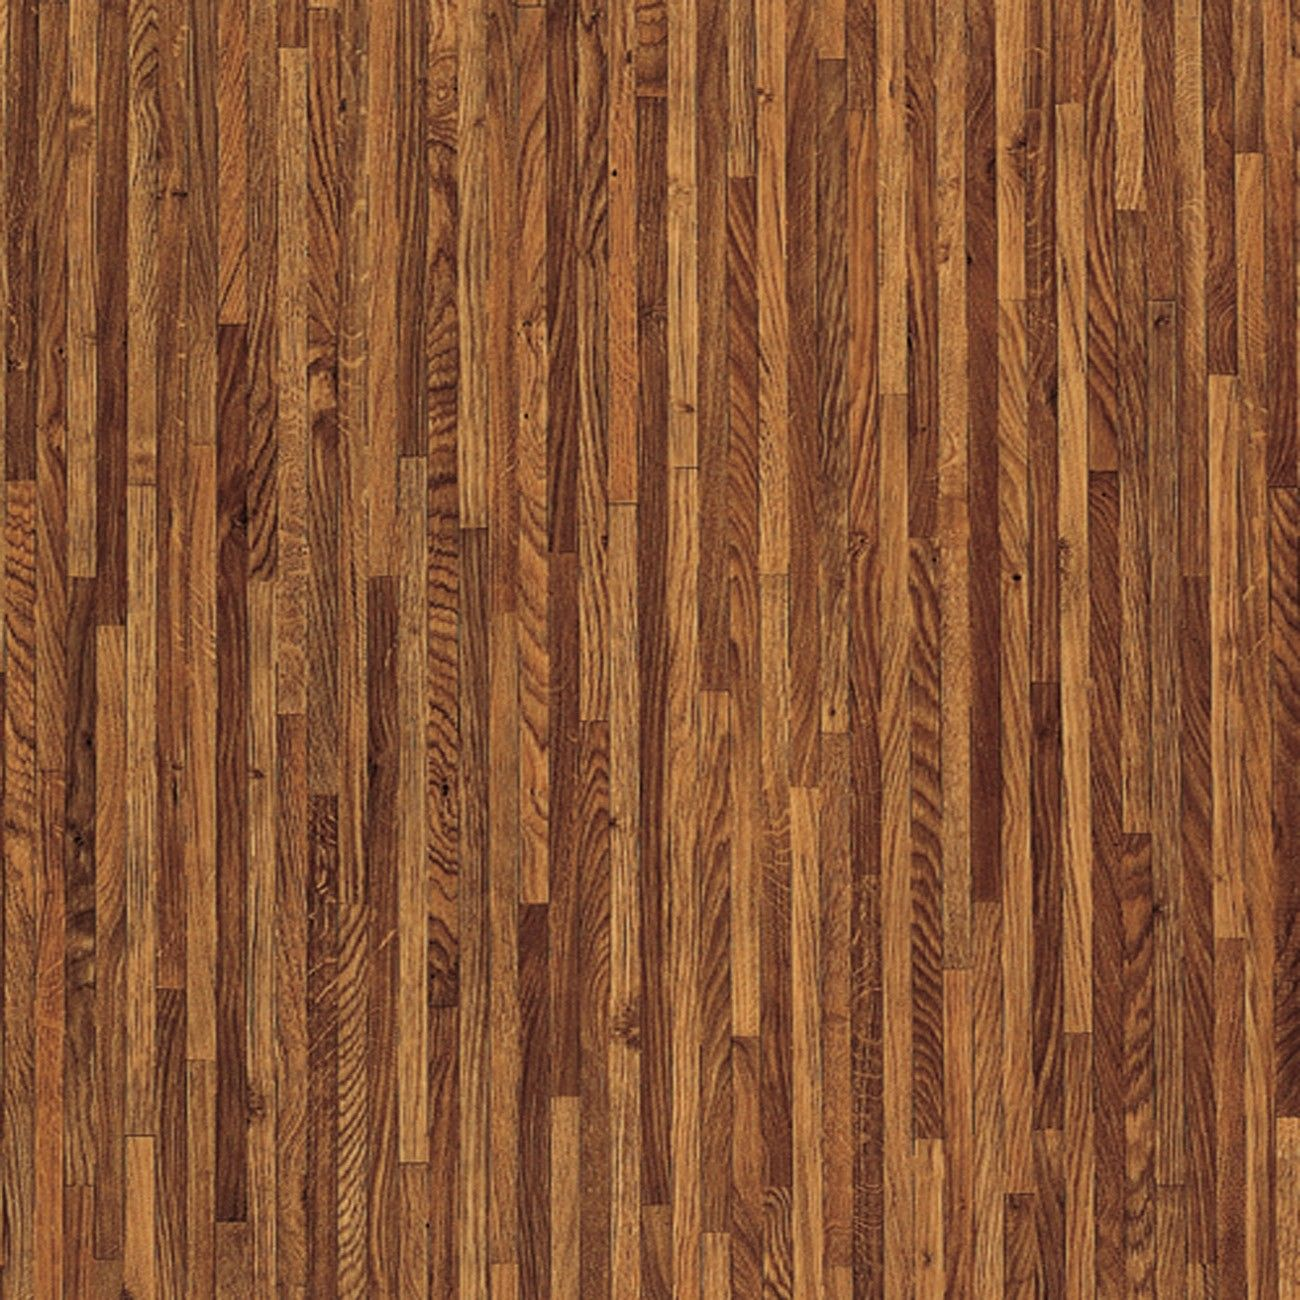 You will surely adore narrower planks of this Wood Effect